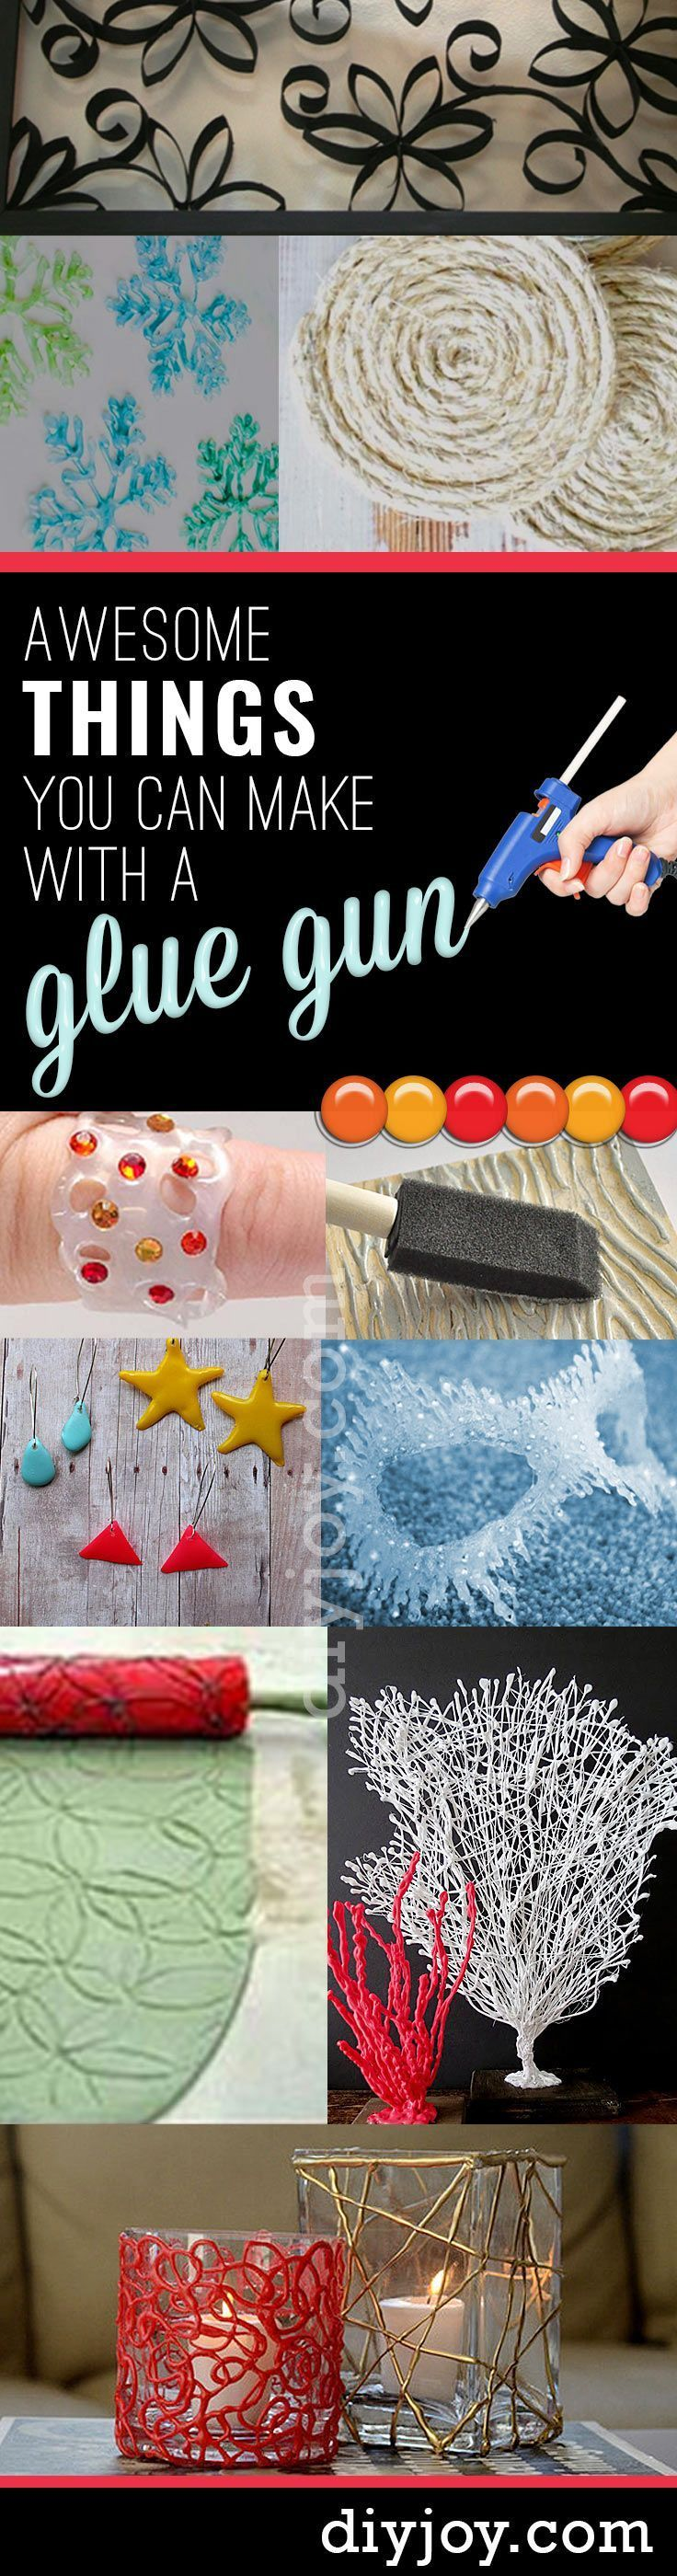 Fun Crafts To Do With A Hot Glue Gun | Best Hot Glue Gun Crafts, DIY Projects and Arts and Crafts Ideas Using Glue Gun Sticks | http://diyjoy.com/hot-glue-gun-crafts-ideas